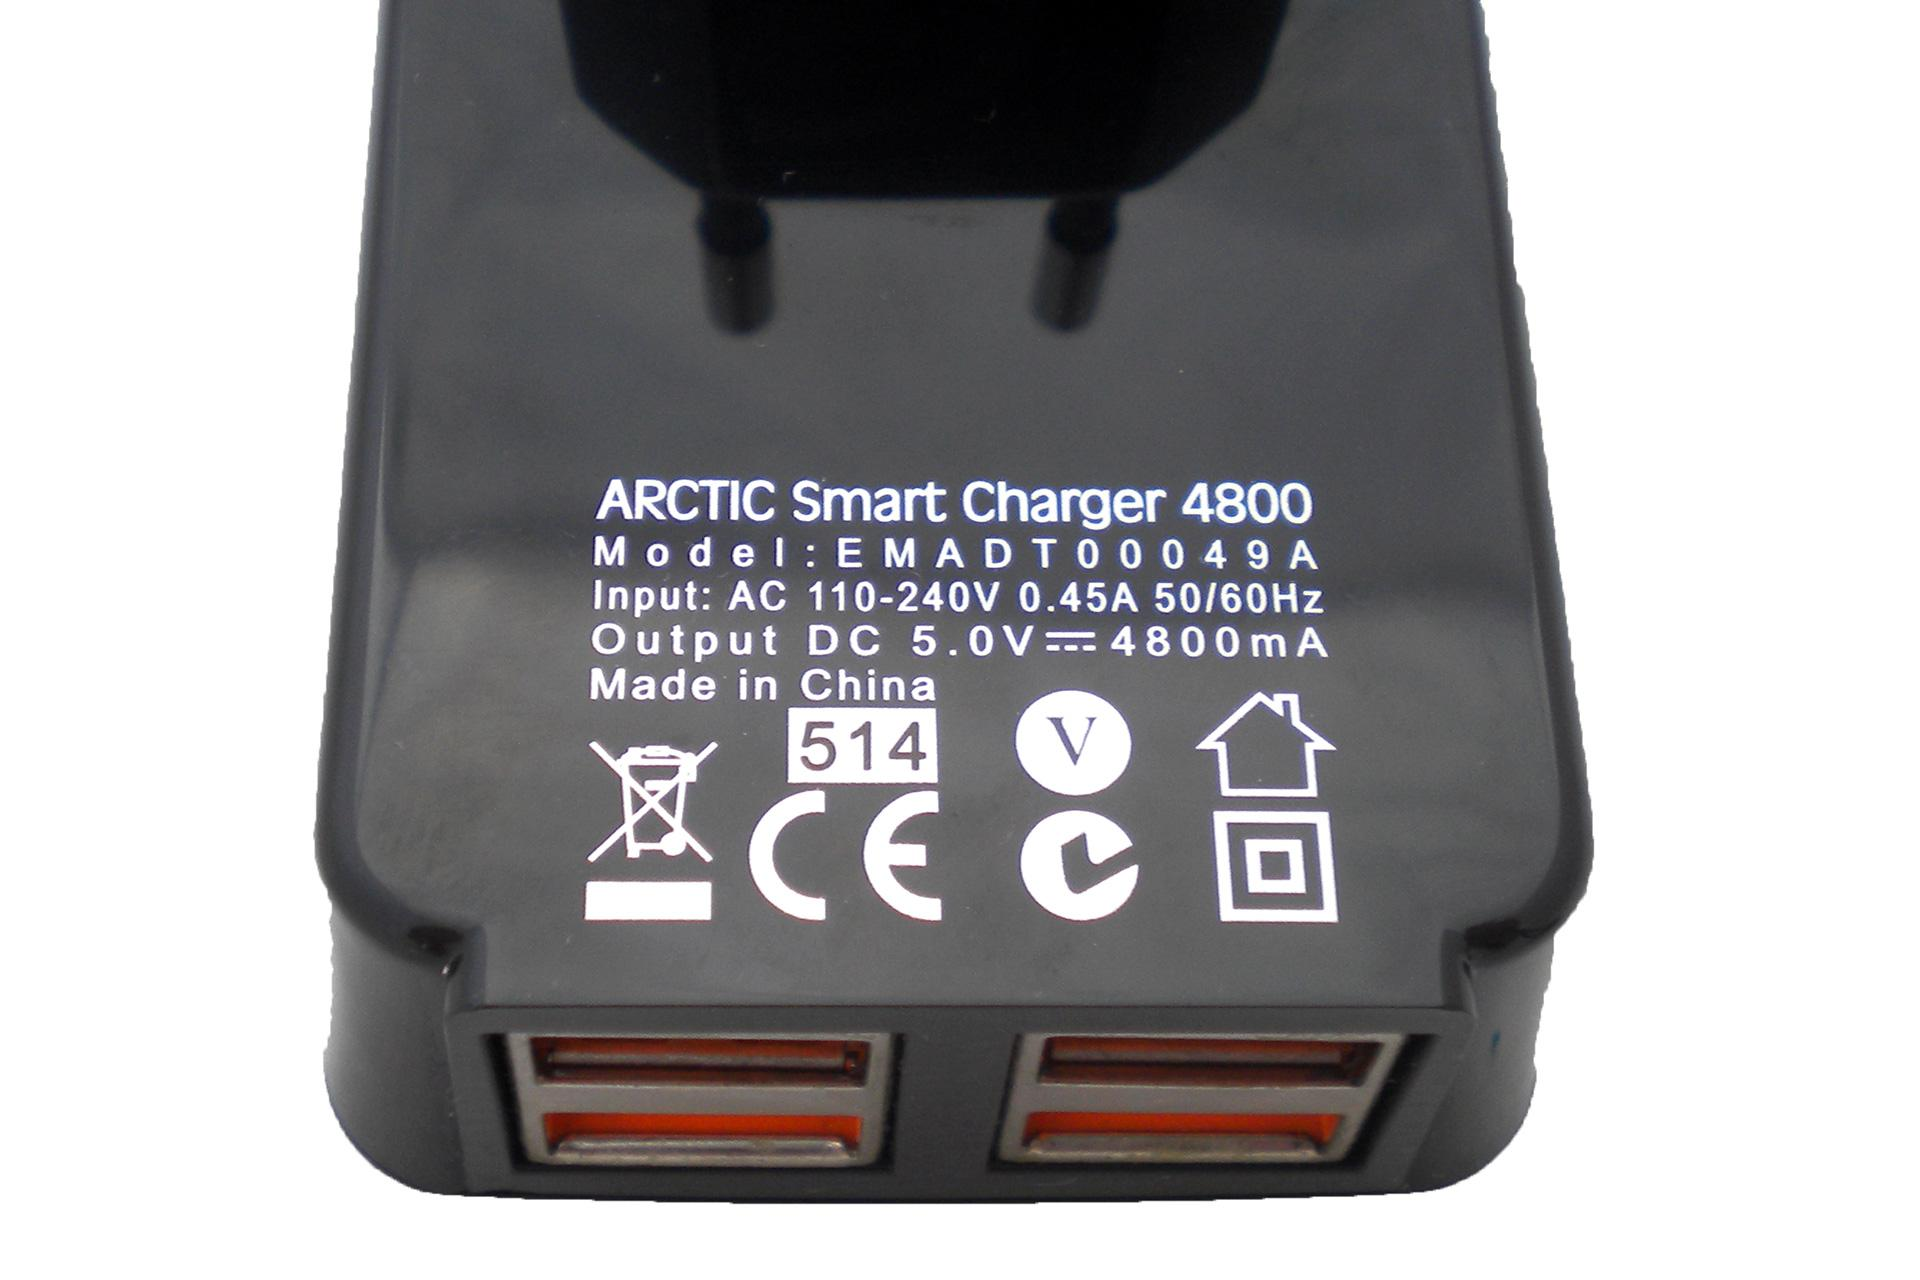 specs Arctic Smart Charger 4800 review